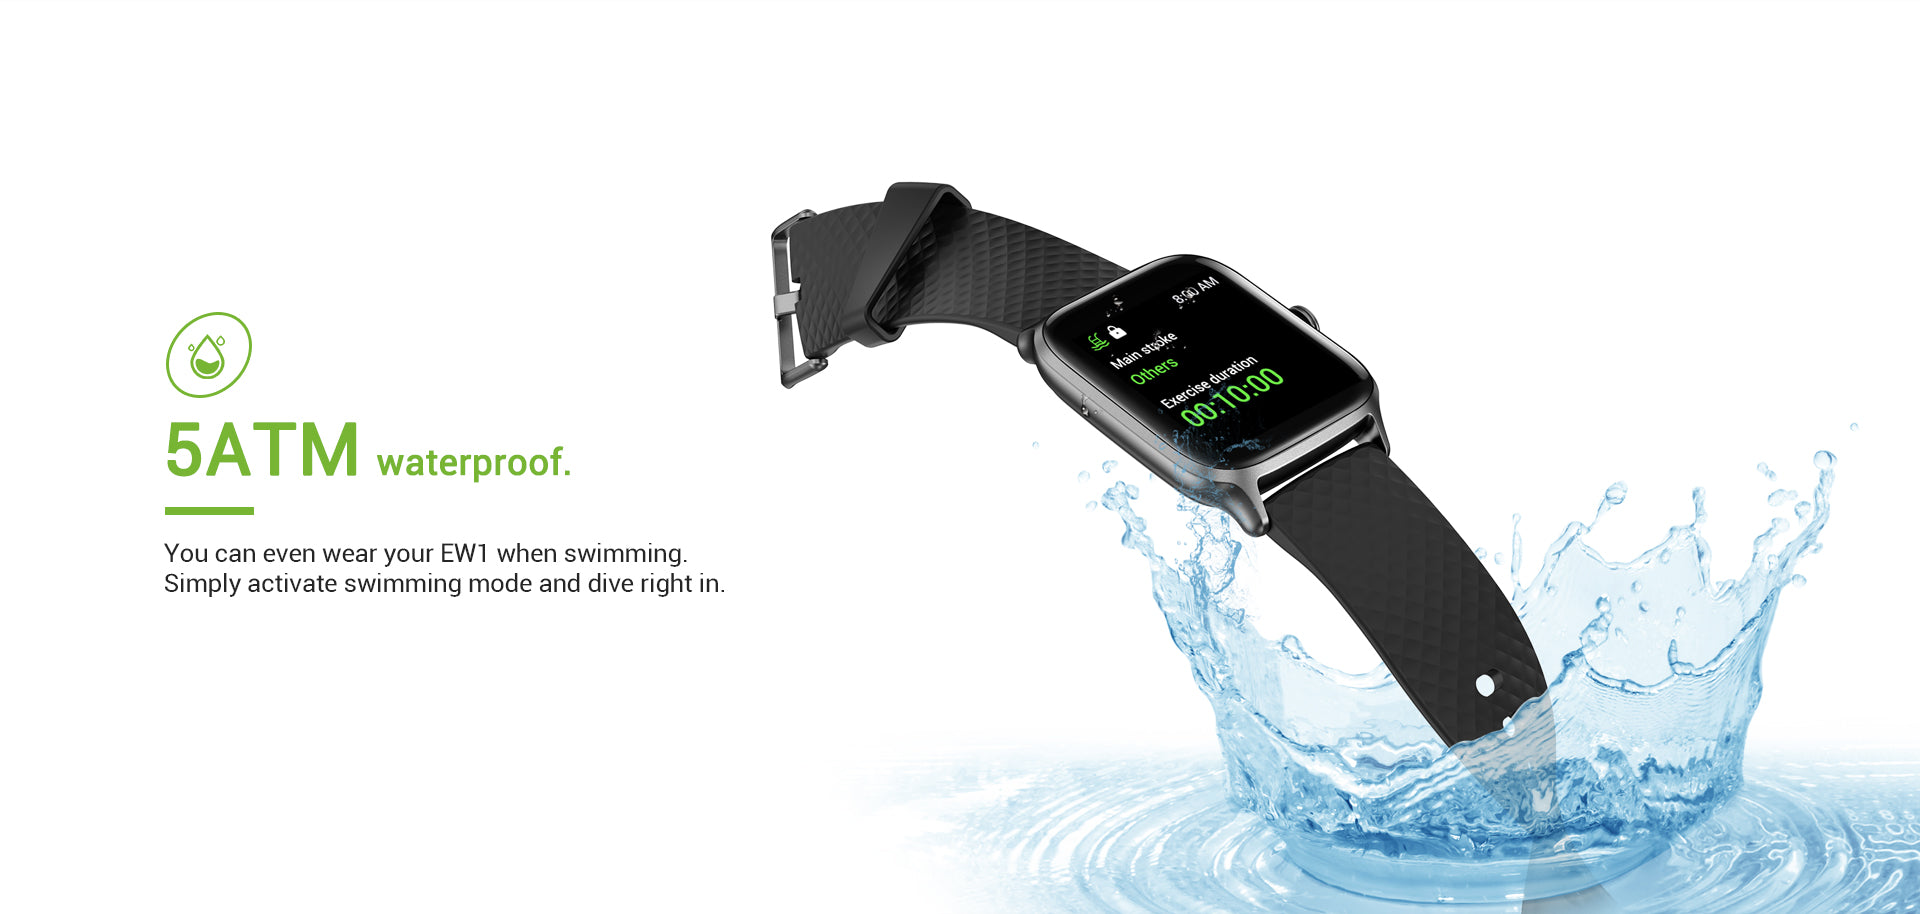 5ATM waterproof. You can even wear your EW1 when swimming. Simply activate swimming mode and dive right in.